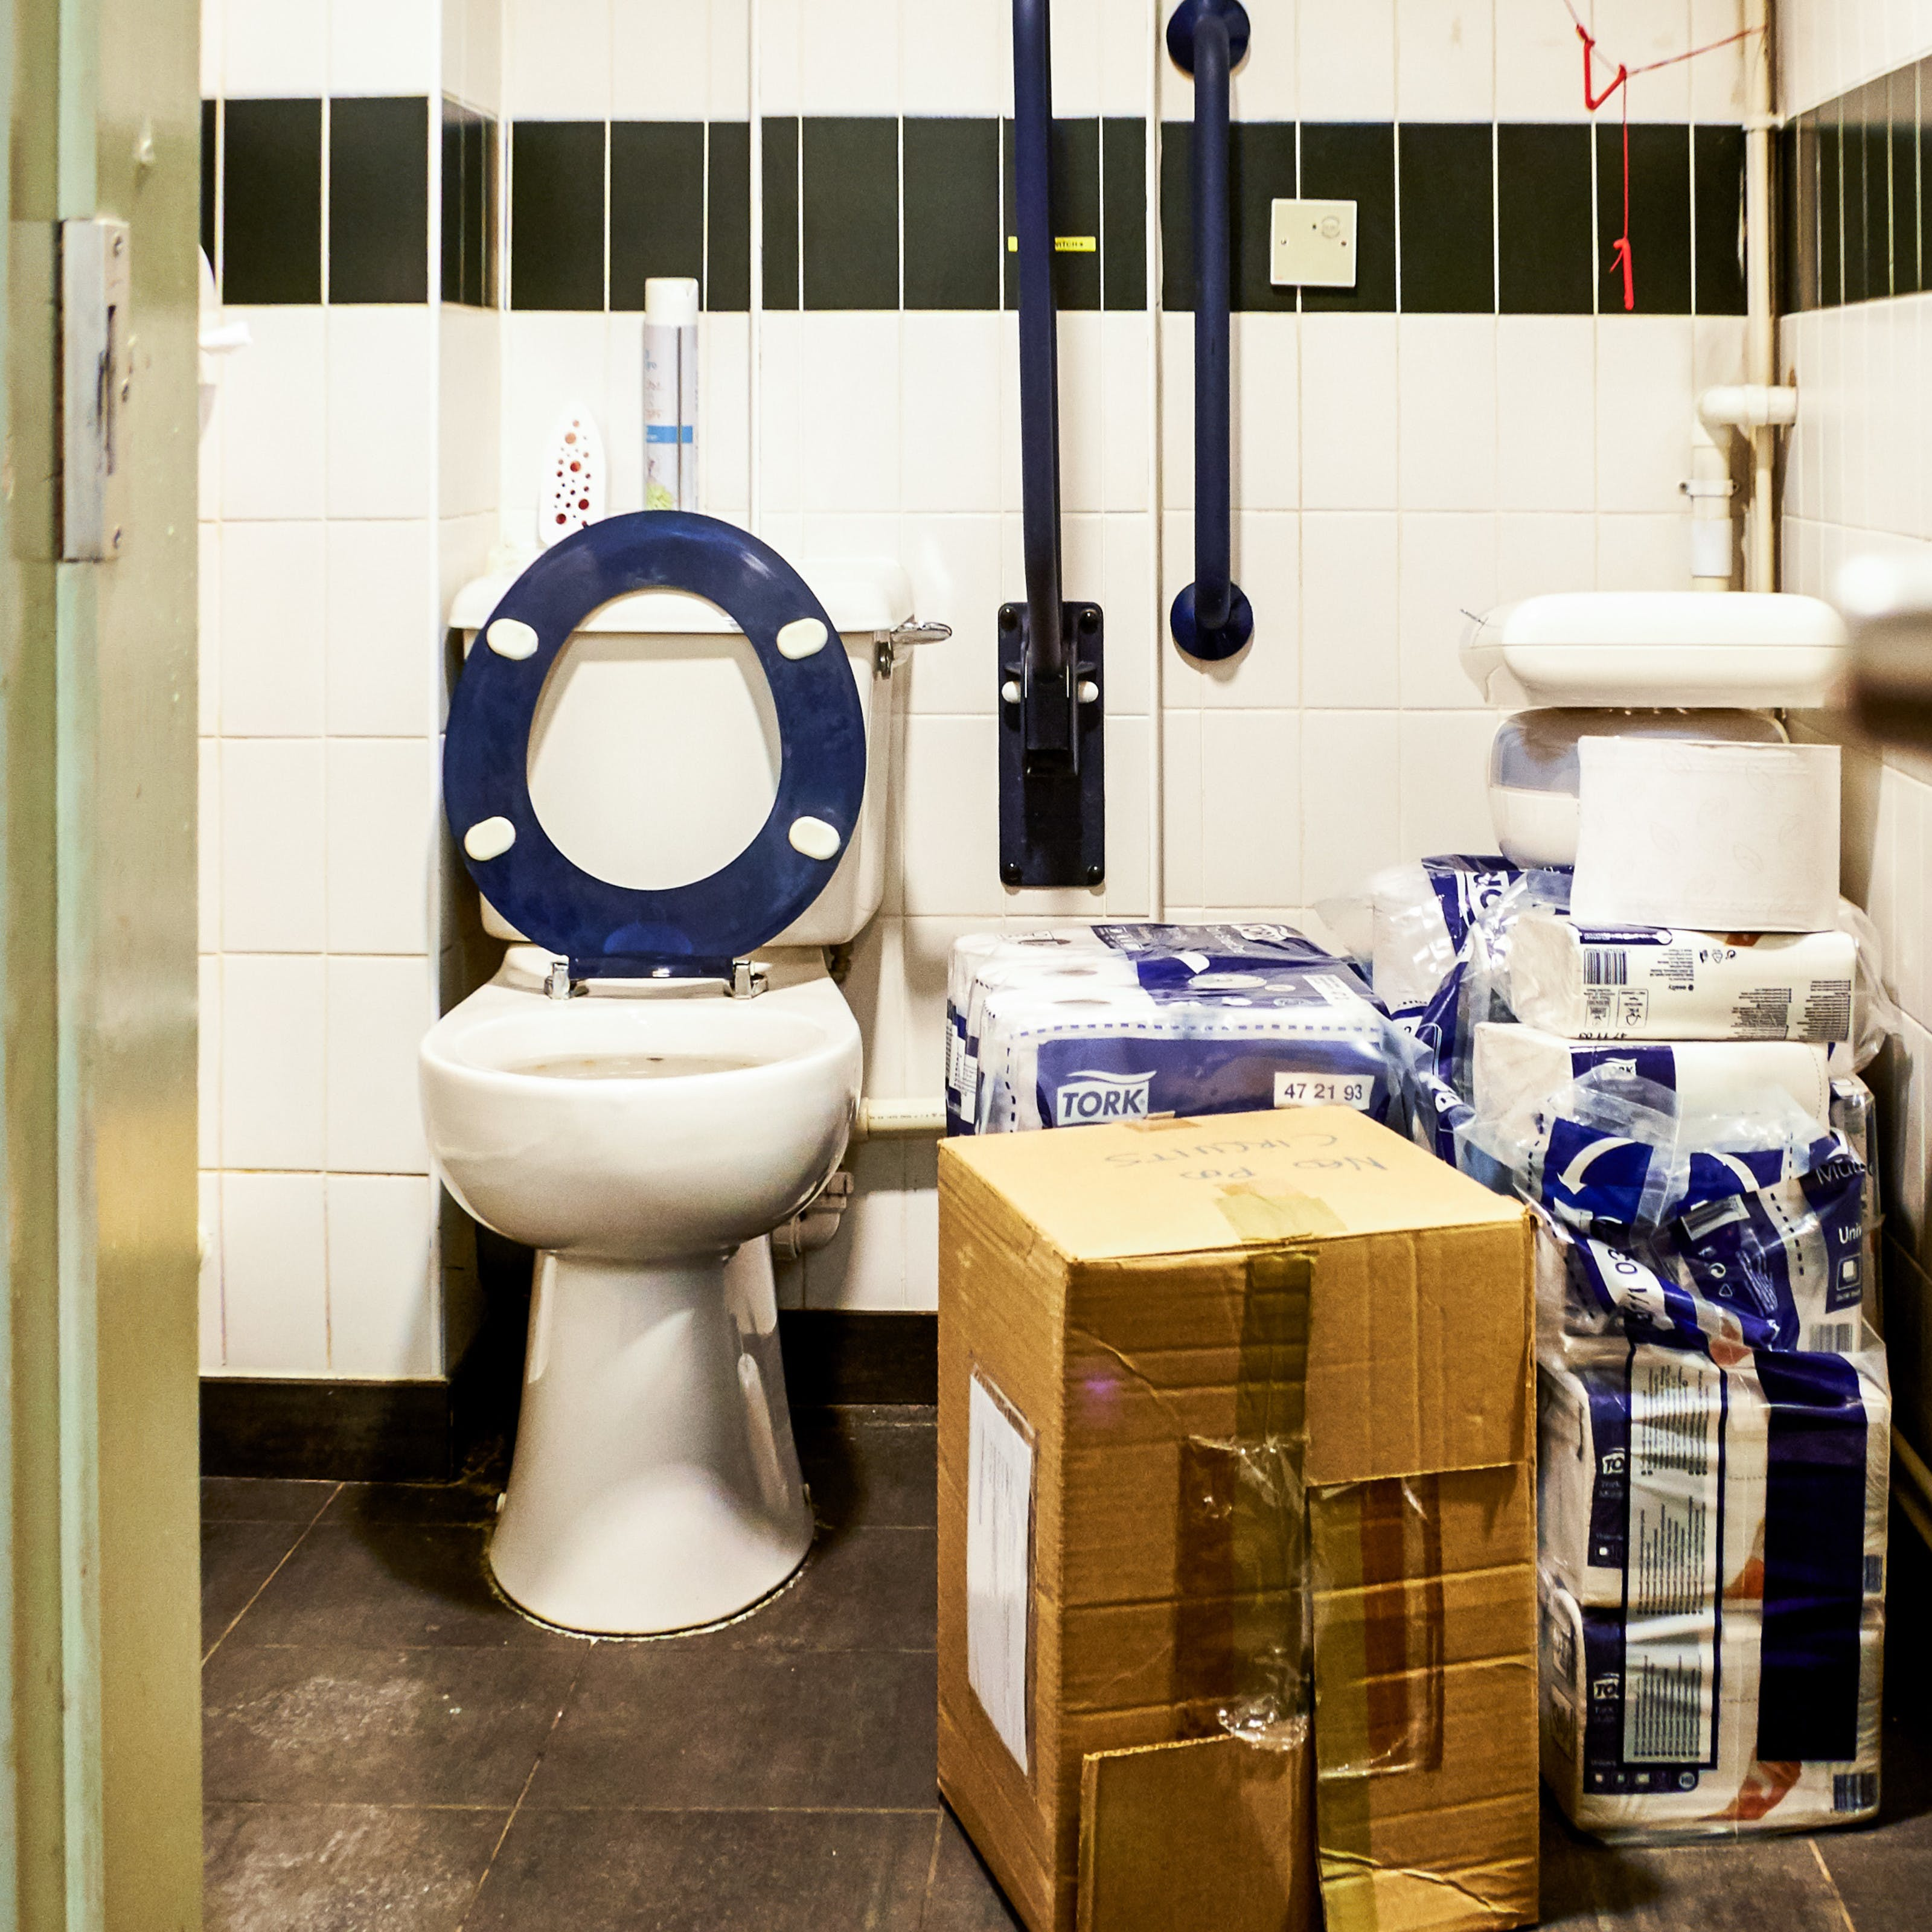 Photograph though a doorway into an accessible toilet. The floorspace next to the toilet is covered with a cardboard box and piles of packets of toilet paper.